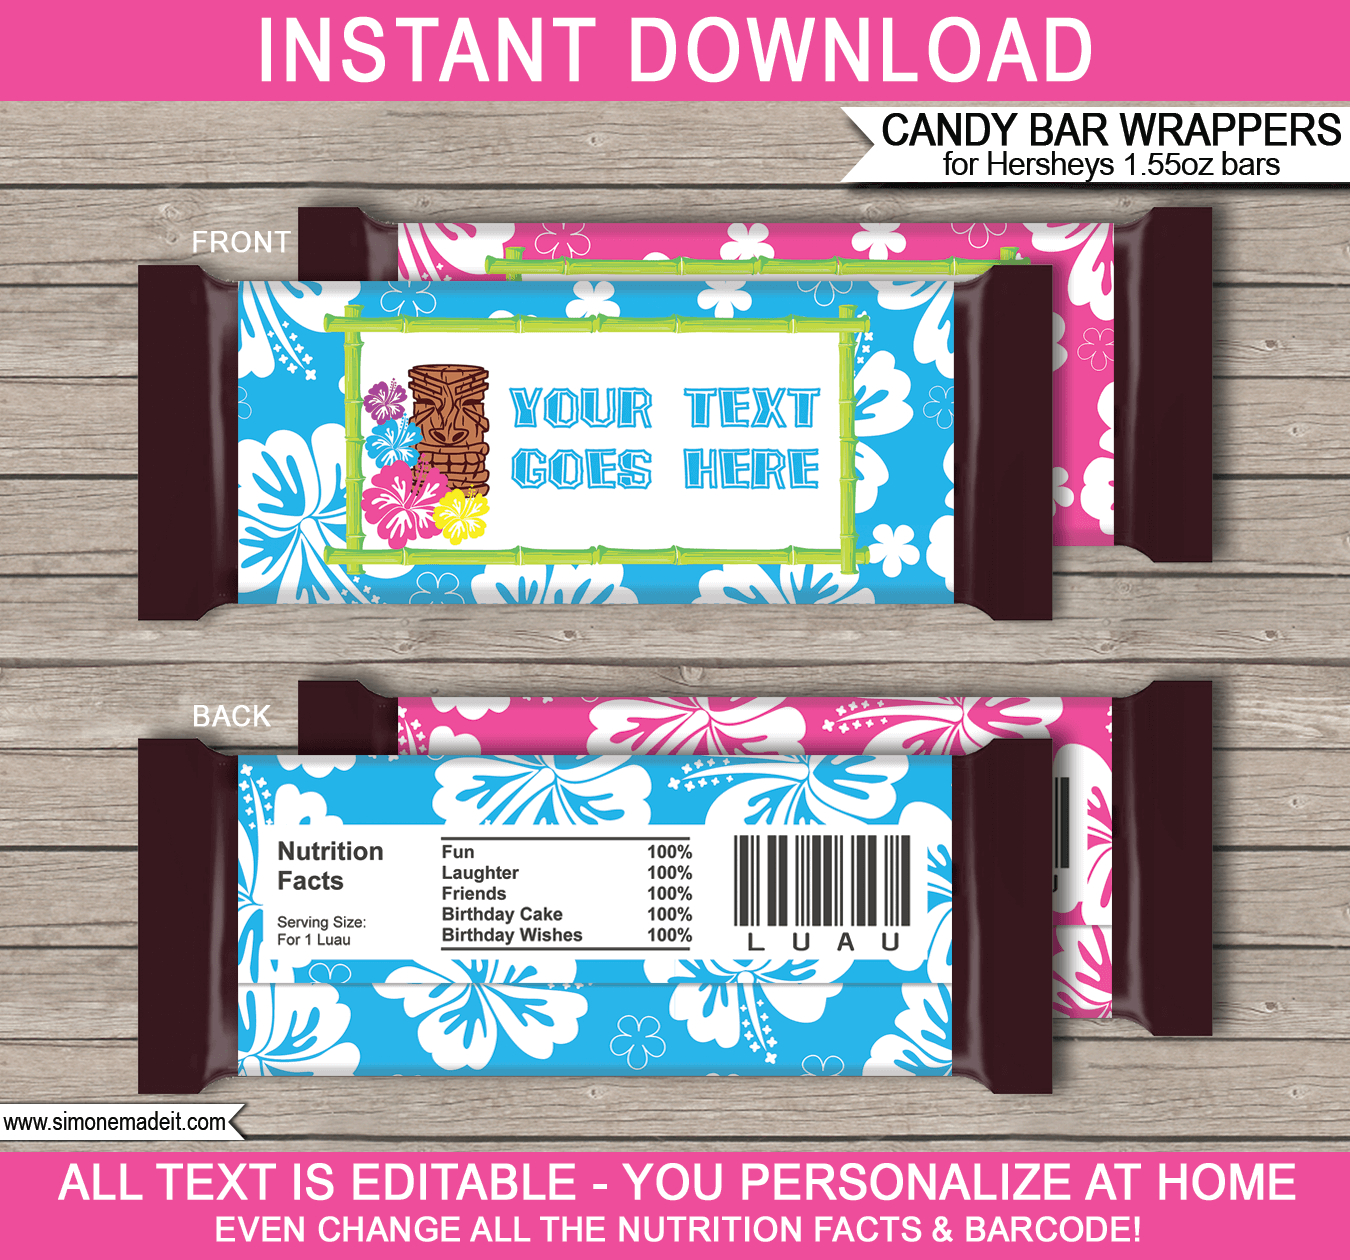 Luau Hershey Candy Bar Wrappers Template - Free Printable Candy Bar Wrappers